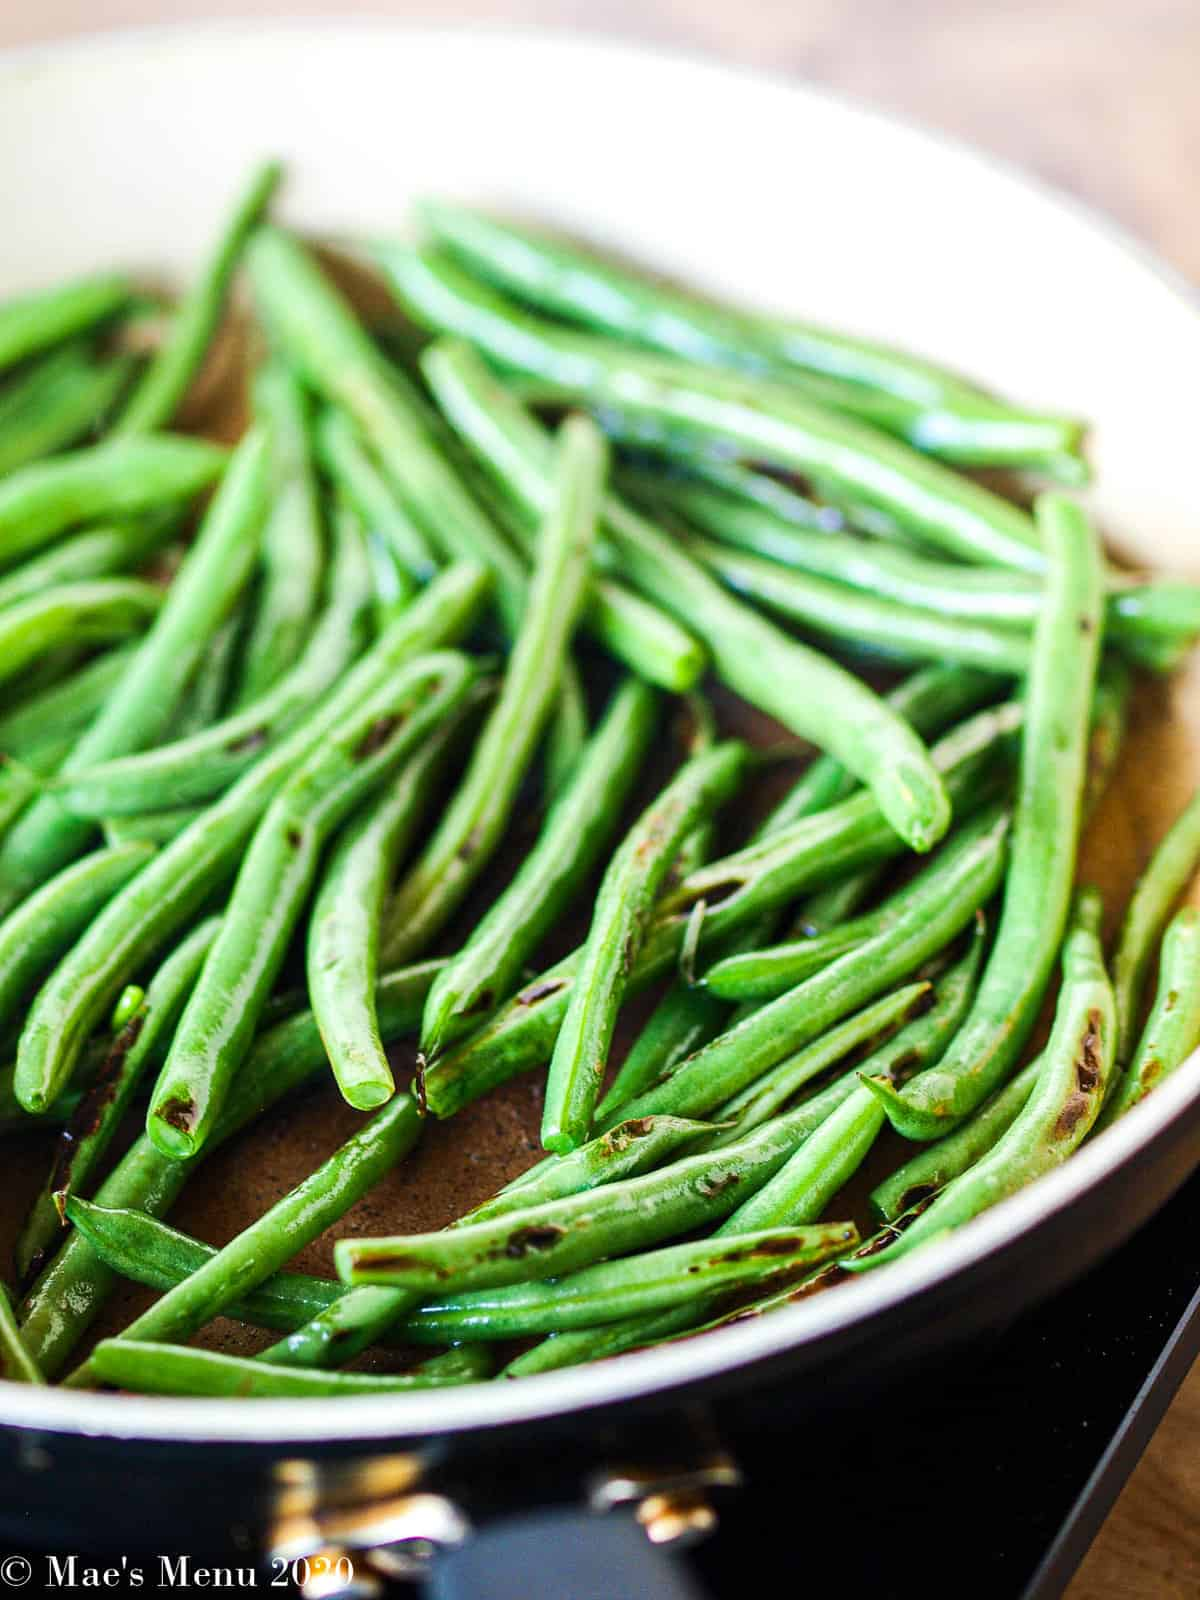 The green beans blistering up in a large non-stick pan